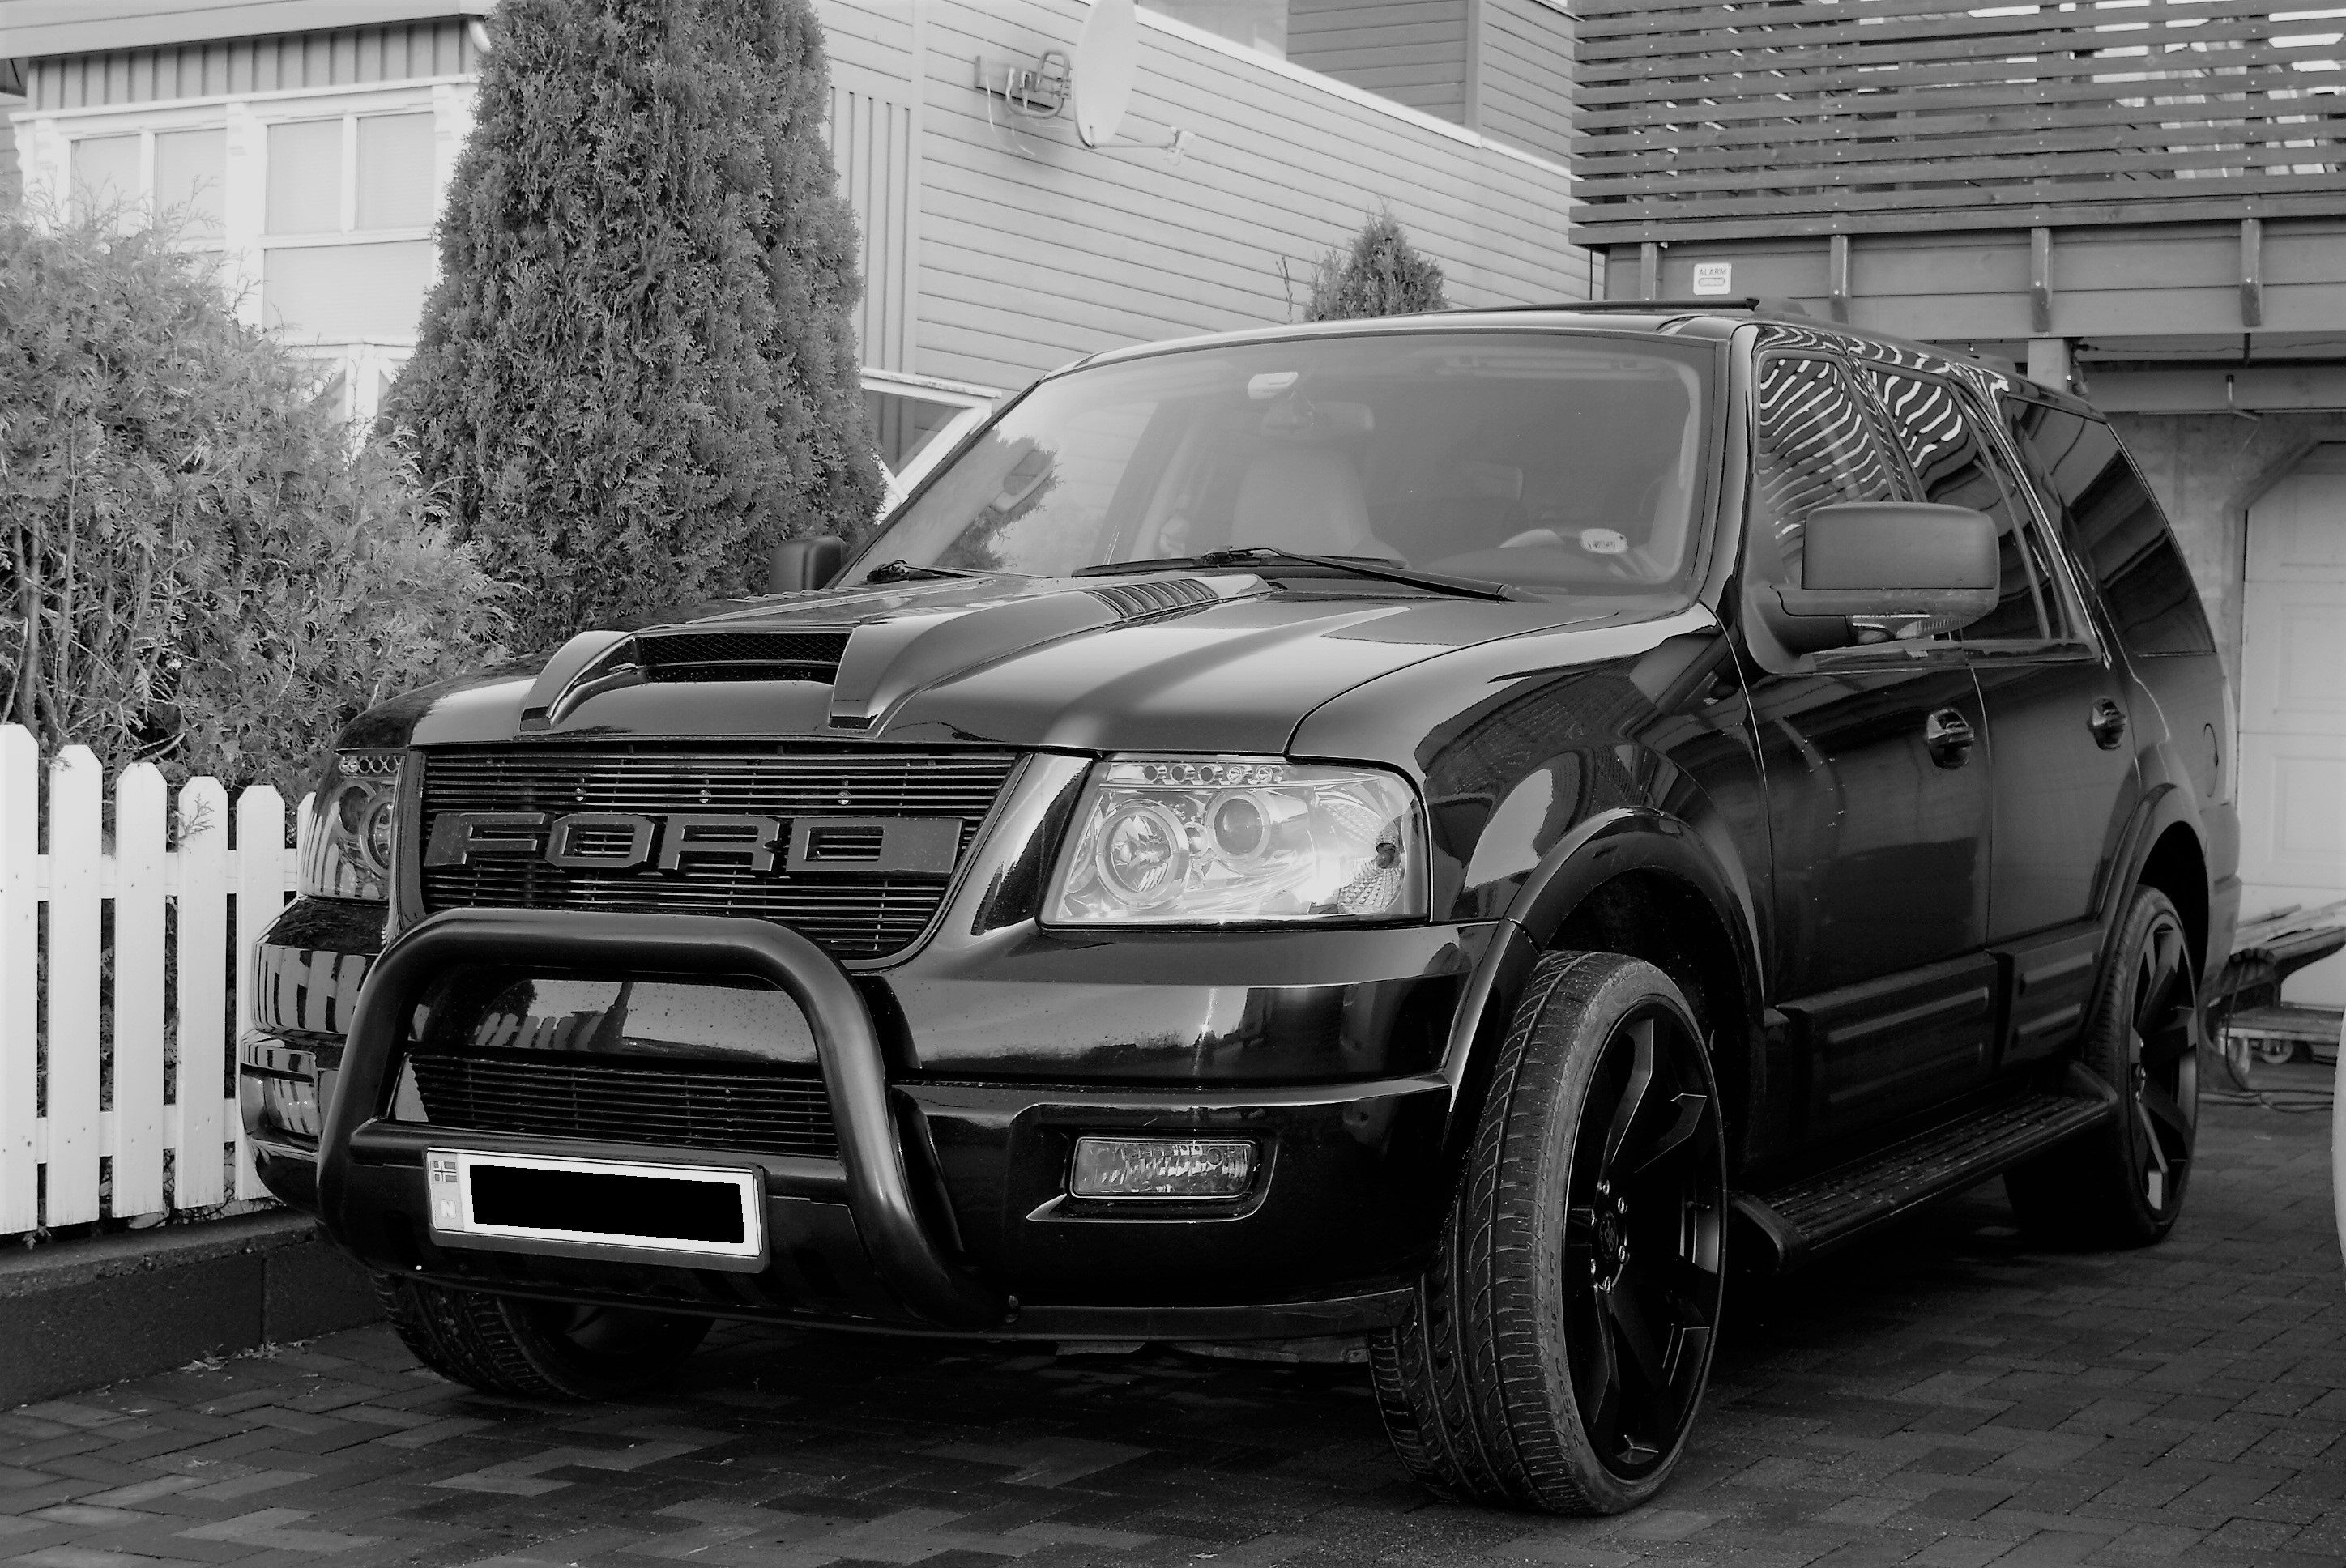 Ford Expedition 2003 24 Inch Wheels 1st Ever Custom Raptor Grill For Ford Expedition Ford Expedition Ford Explorer Xlt Lifted Ford Explorer